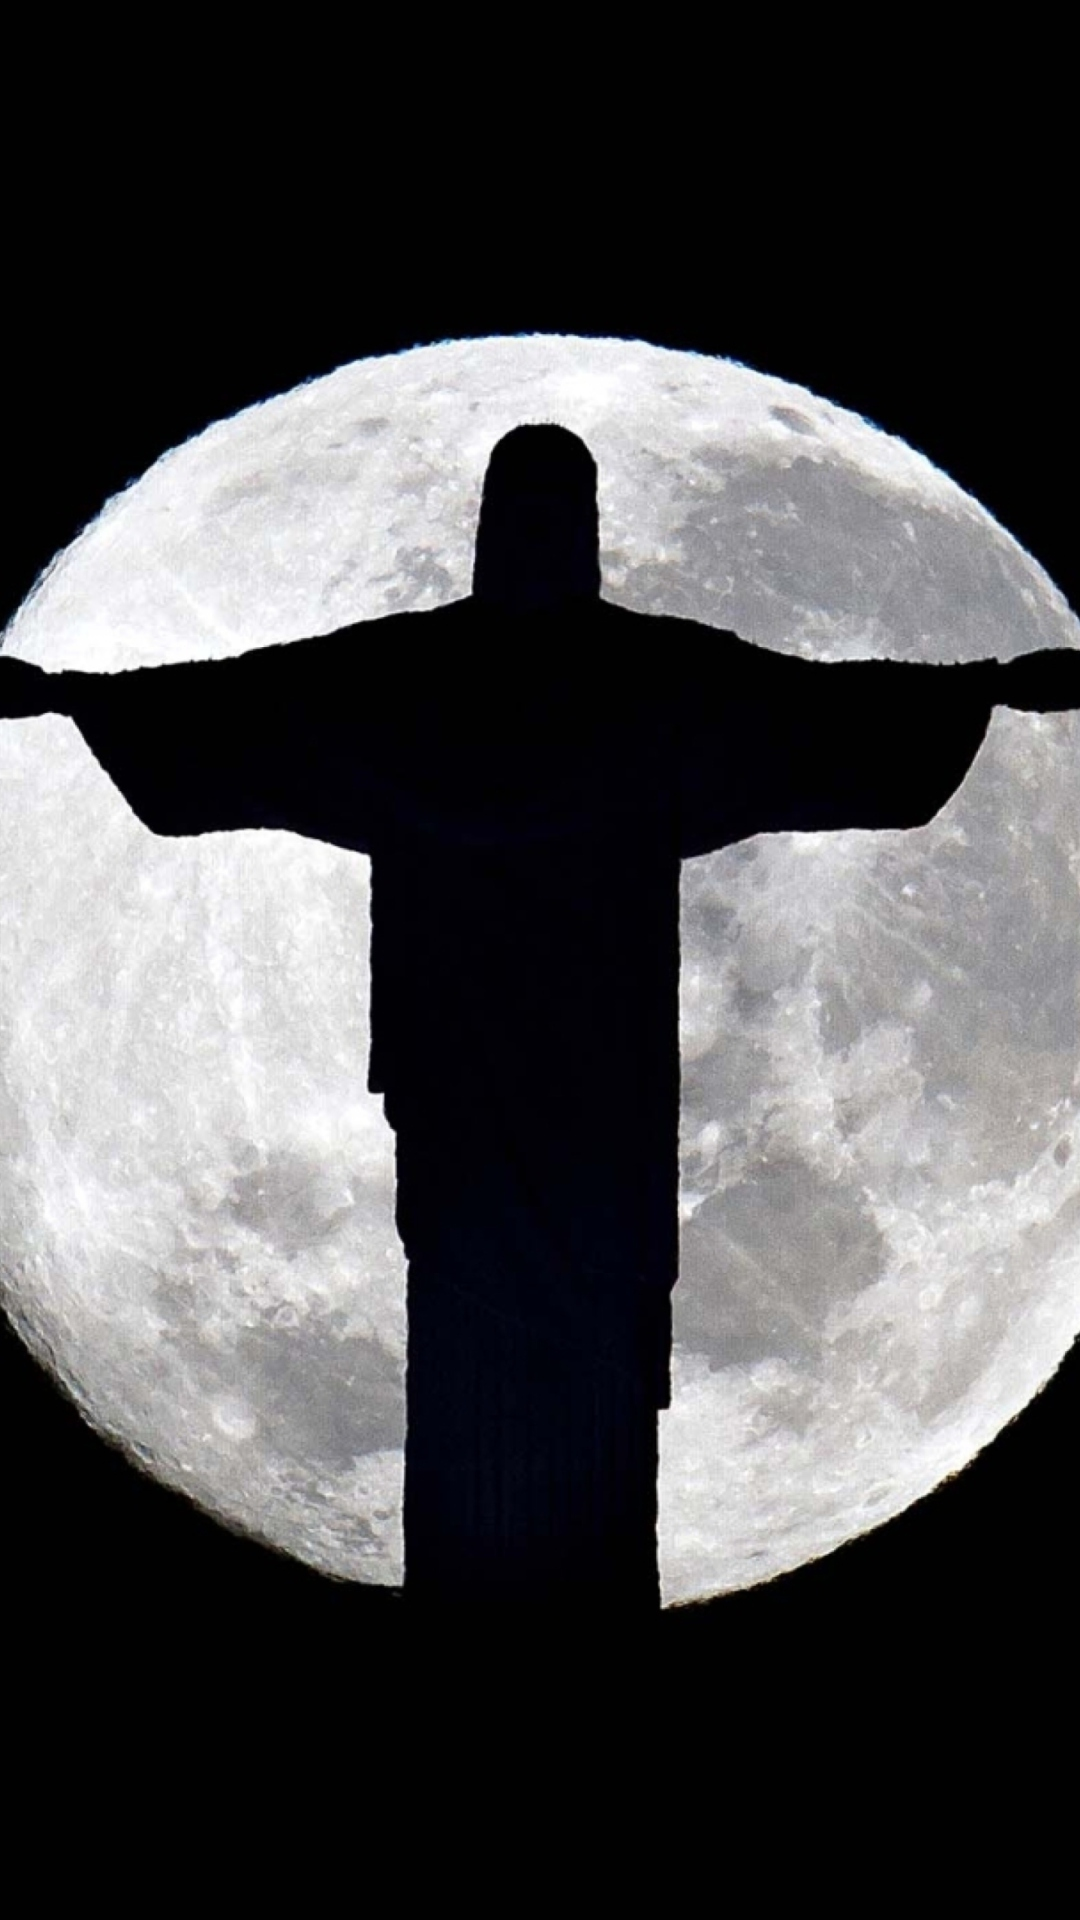 Full Moon And Christ The Redeemer In Rio De Janeiro